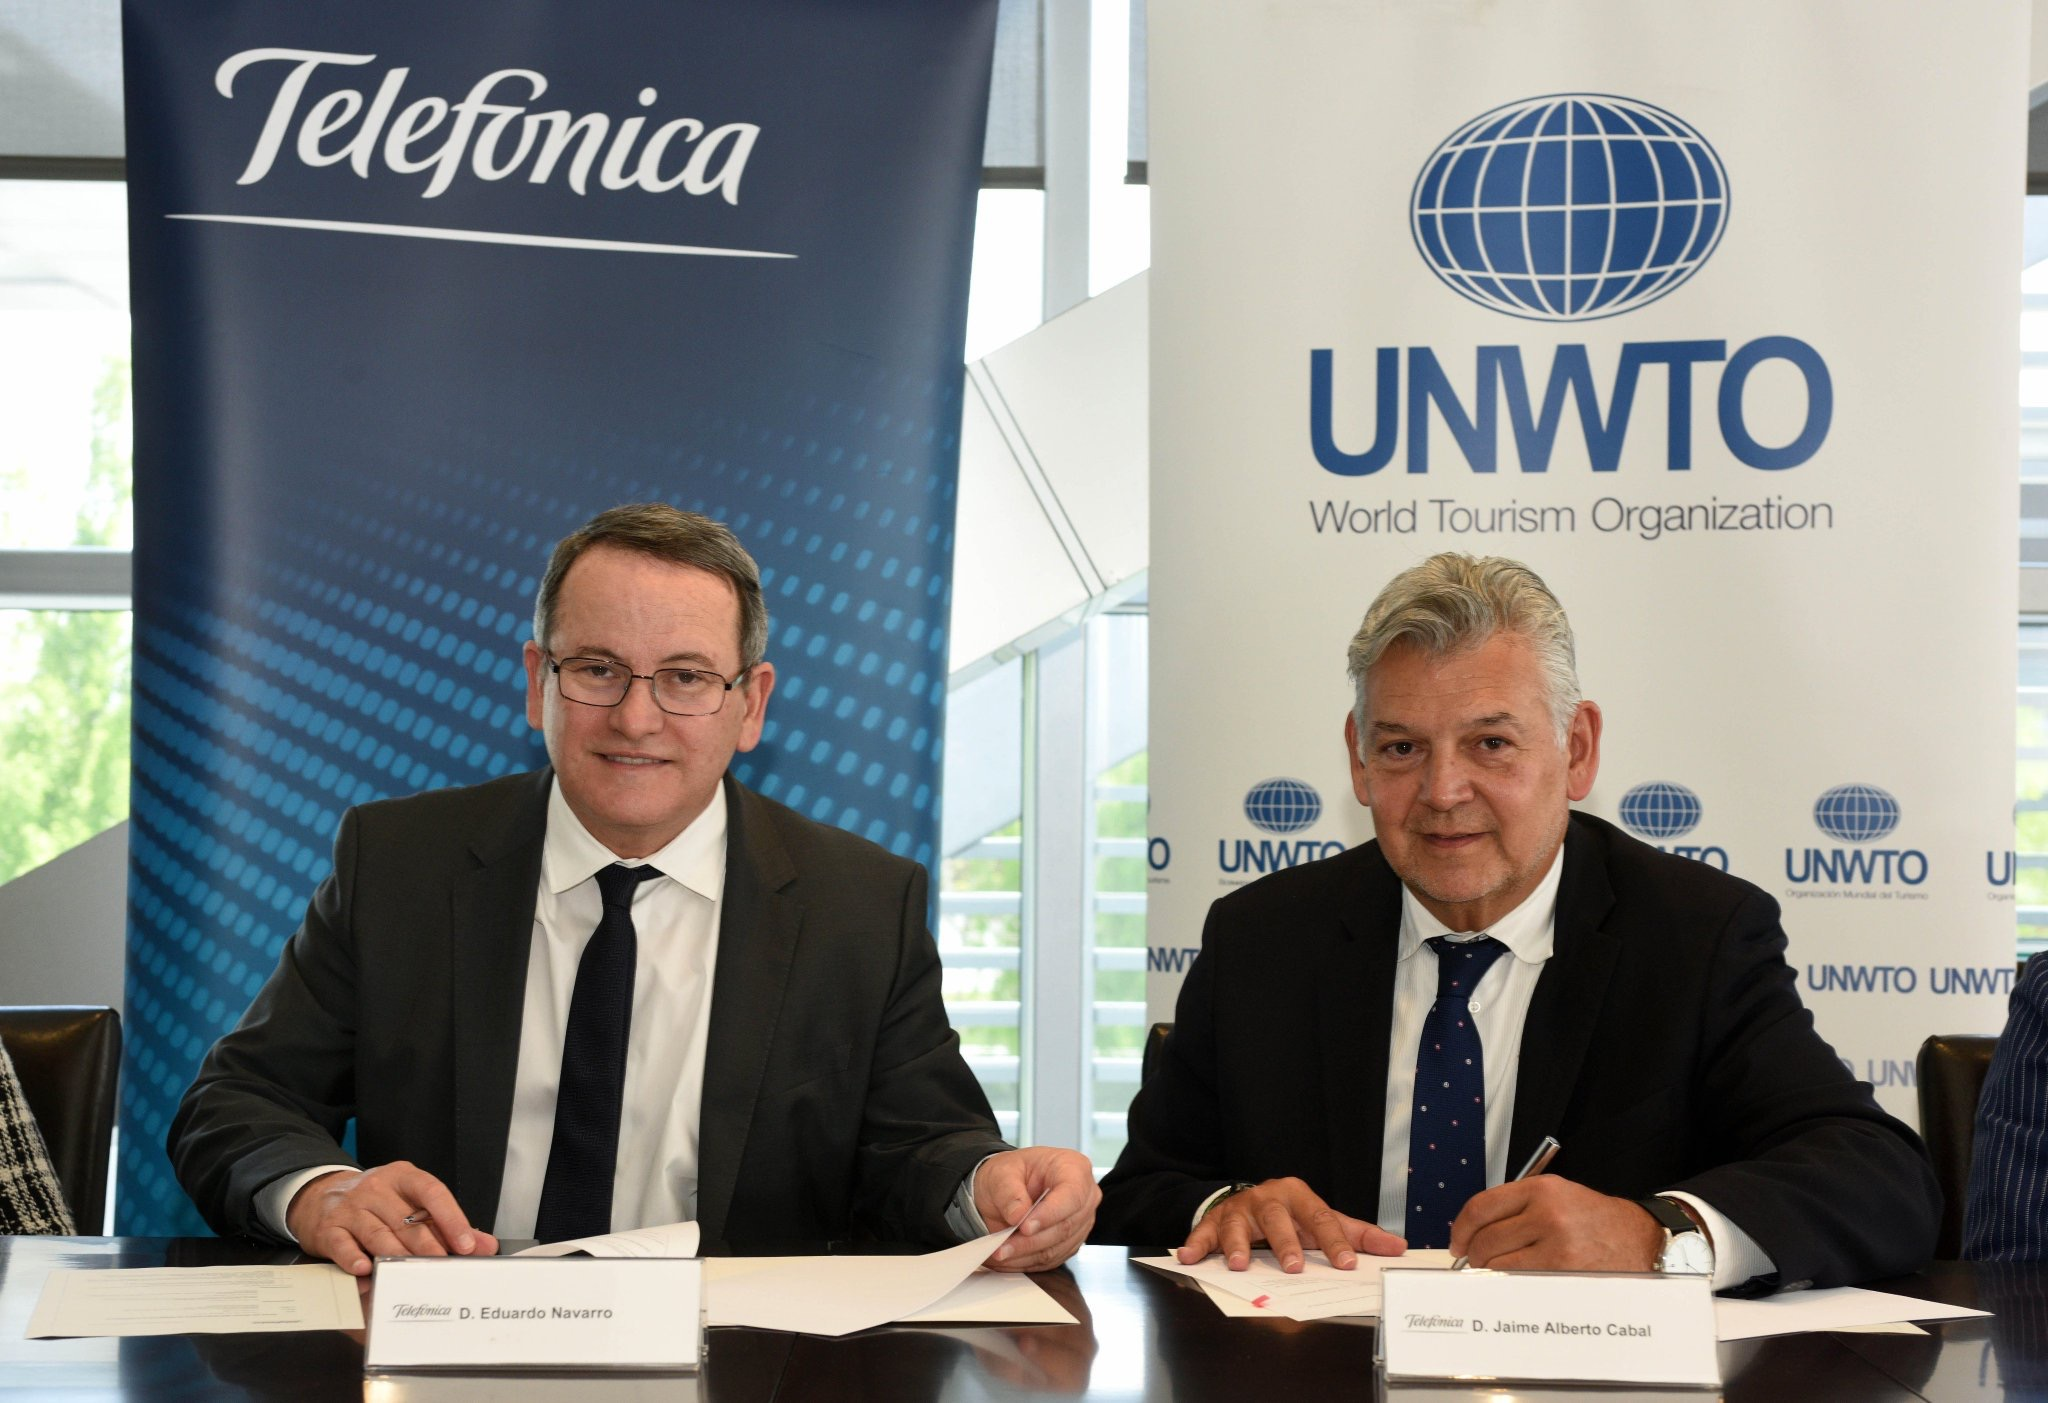 UNWTO partners with Telefónica to promote tourism sector digitalization